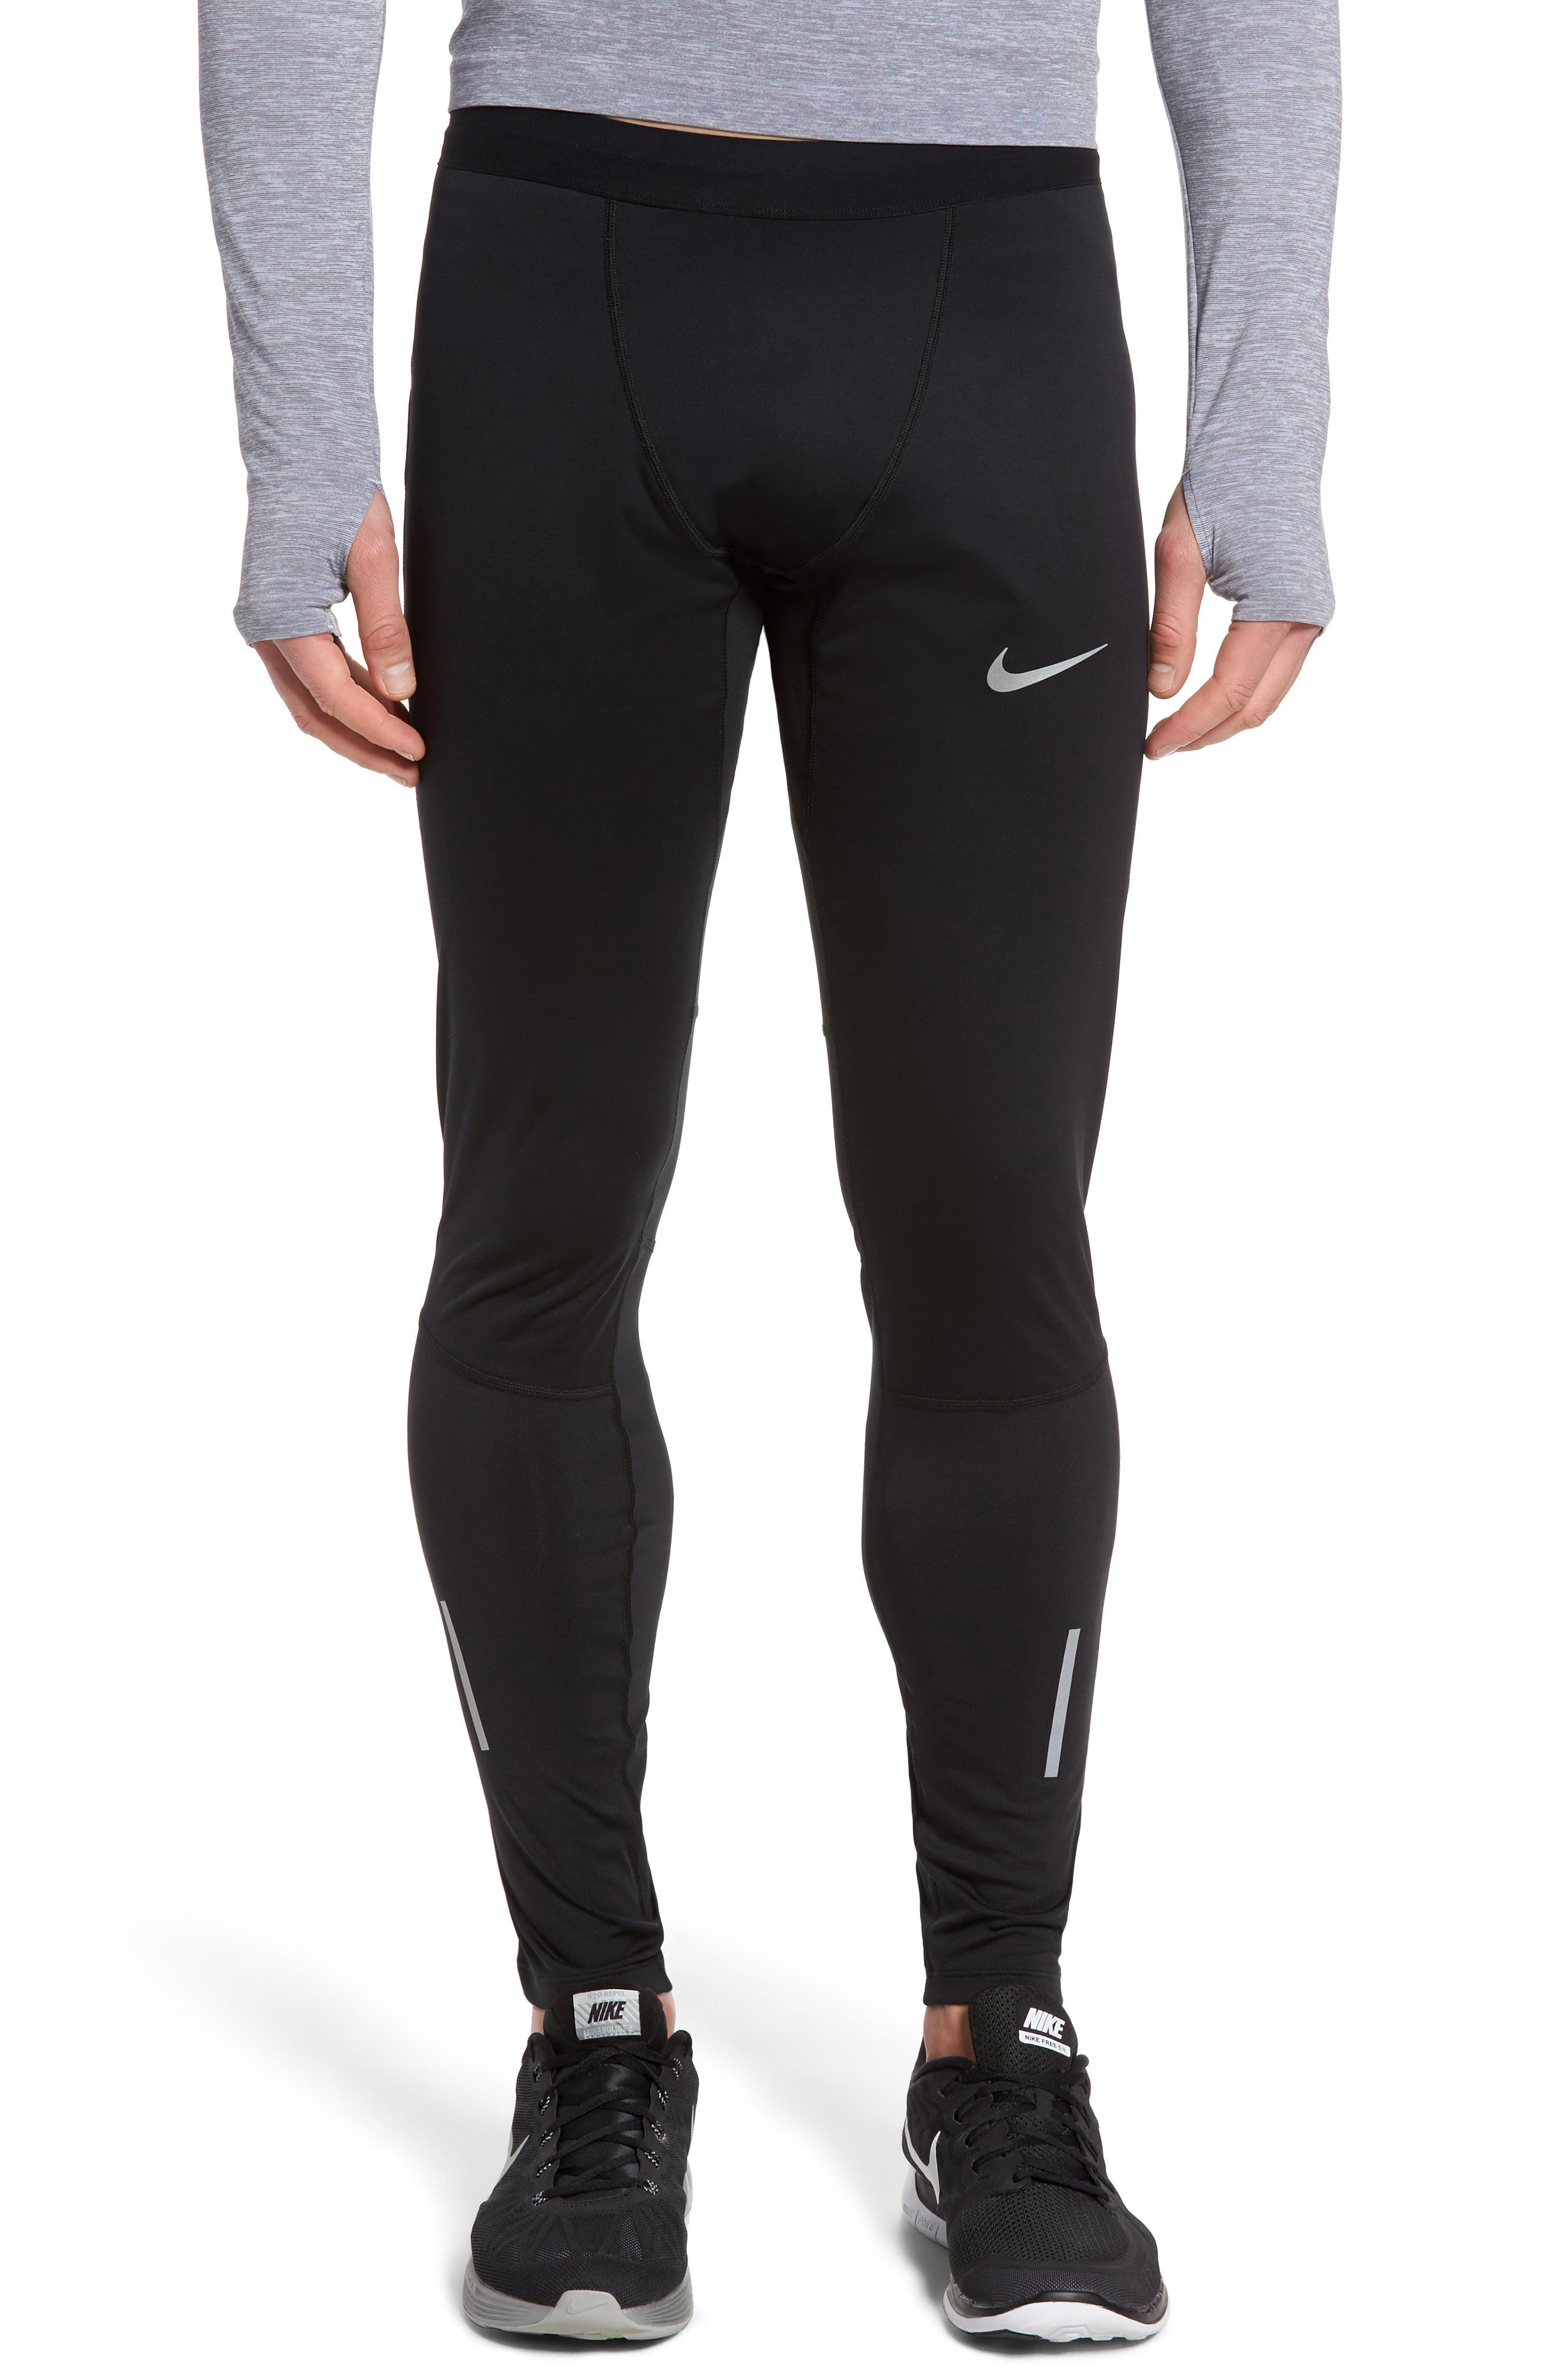 Shield Tech Weather Resistant Running Tights,                             Main thumbnail 1, color,                             010